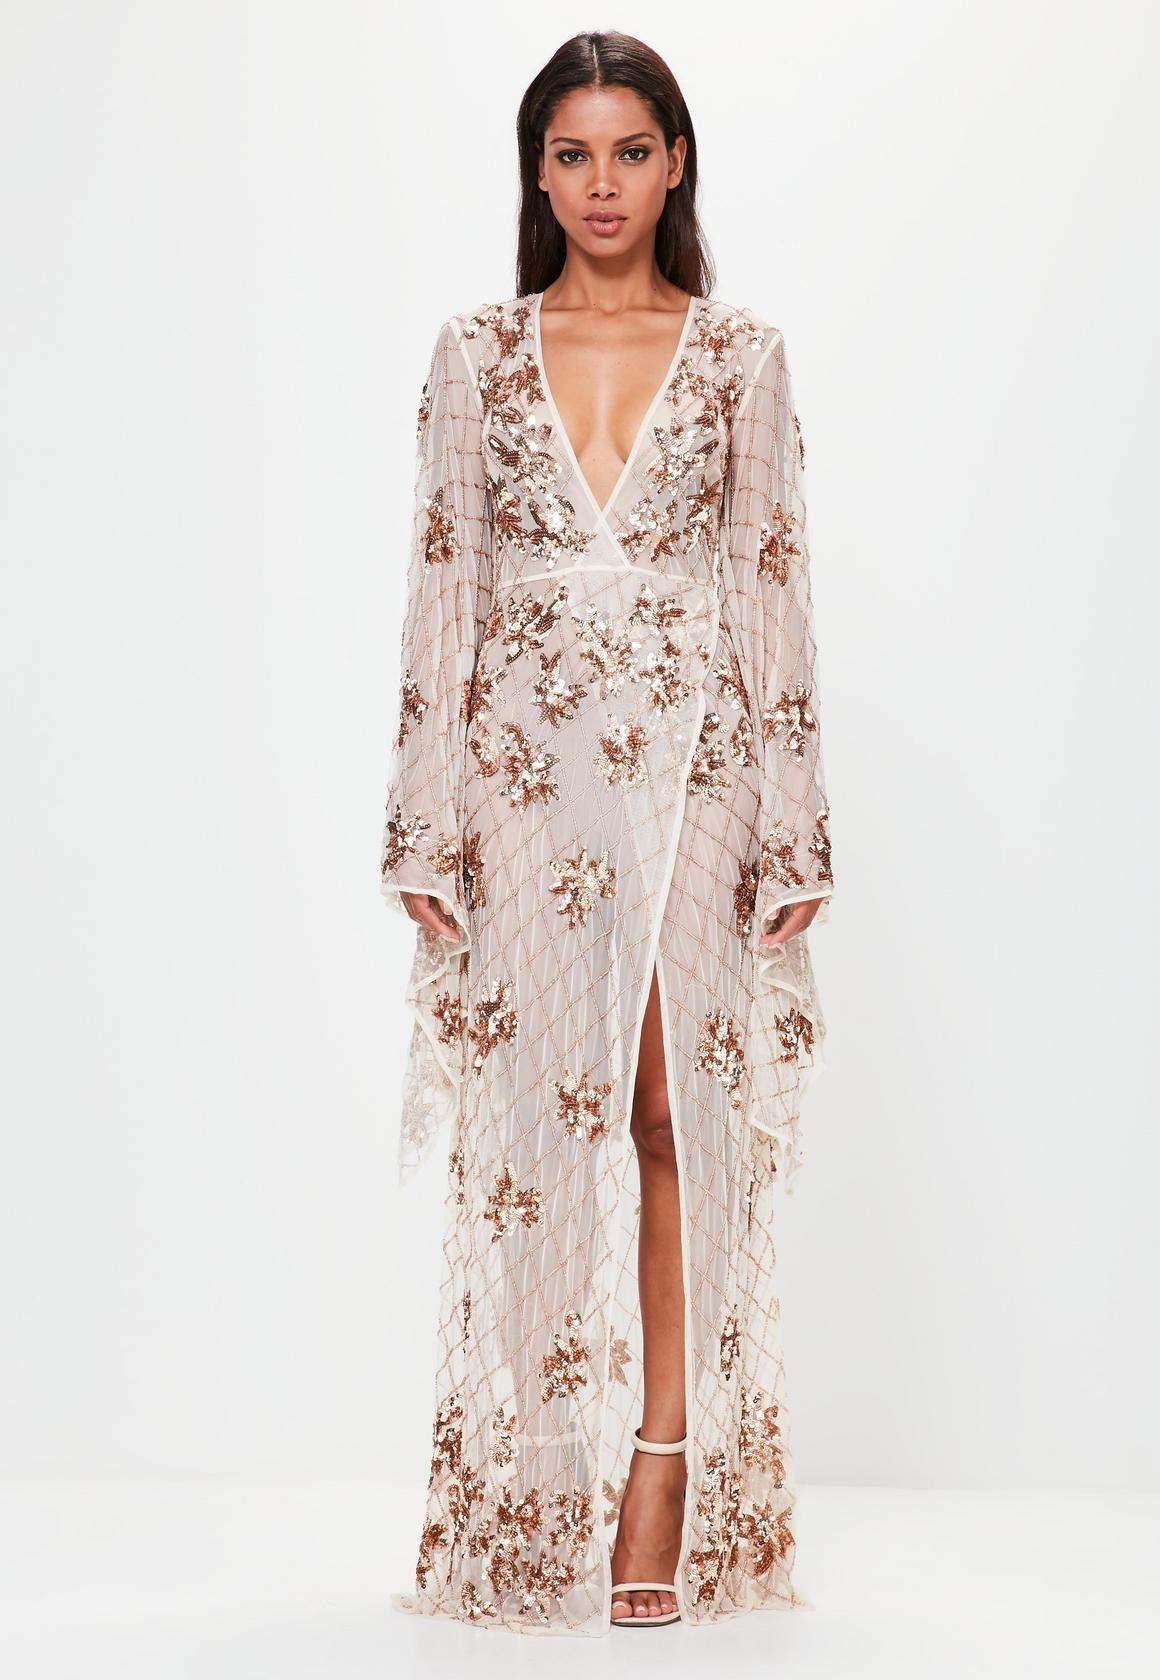 cf278a67611d Missguided - Peace Love Bronze Kimono Sleeve Embellished Maxi Dress